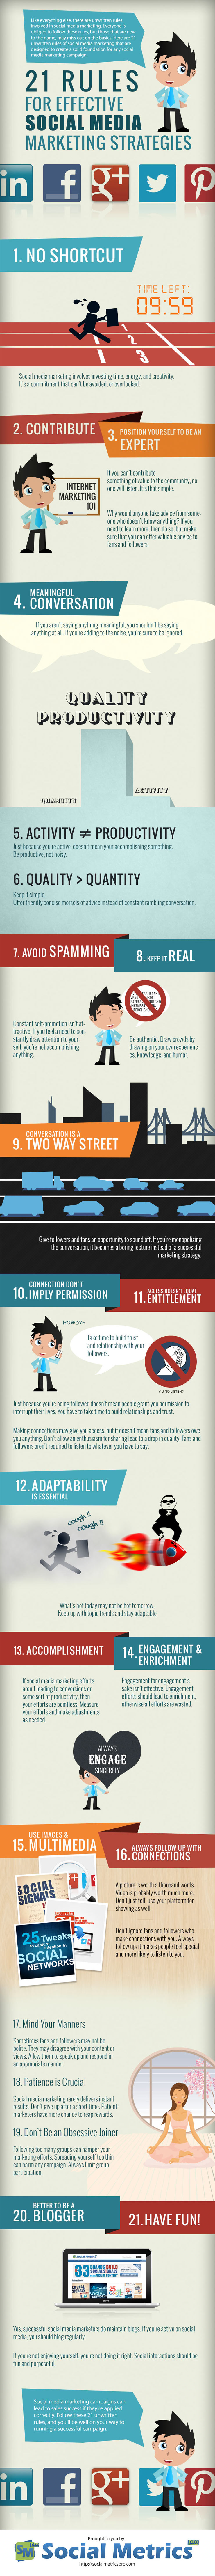 21 social media rules infographic